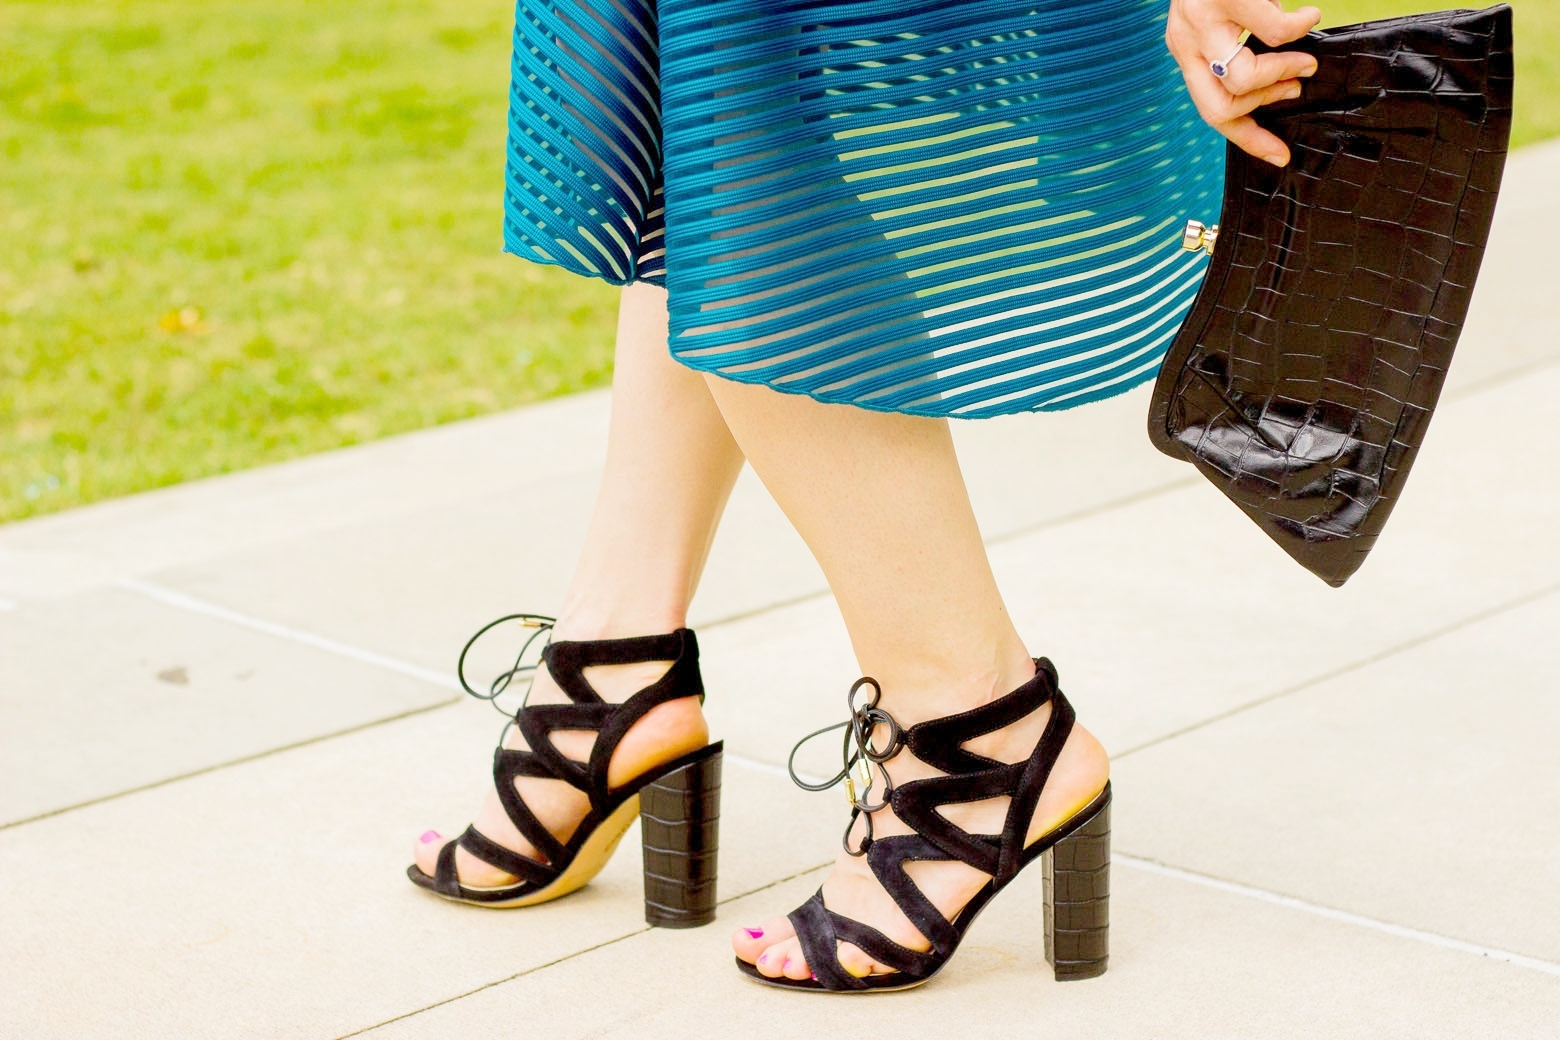 Sam Edelman Sandals on Belle Meets World blog